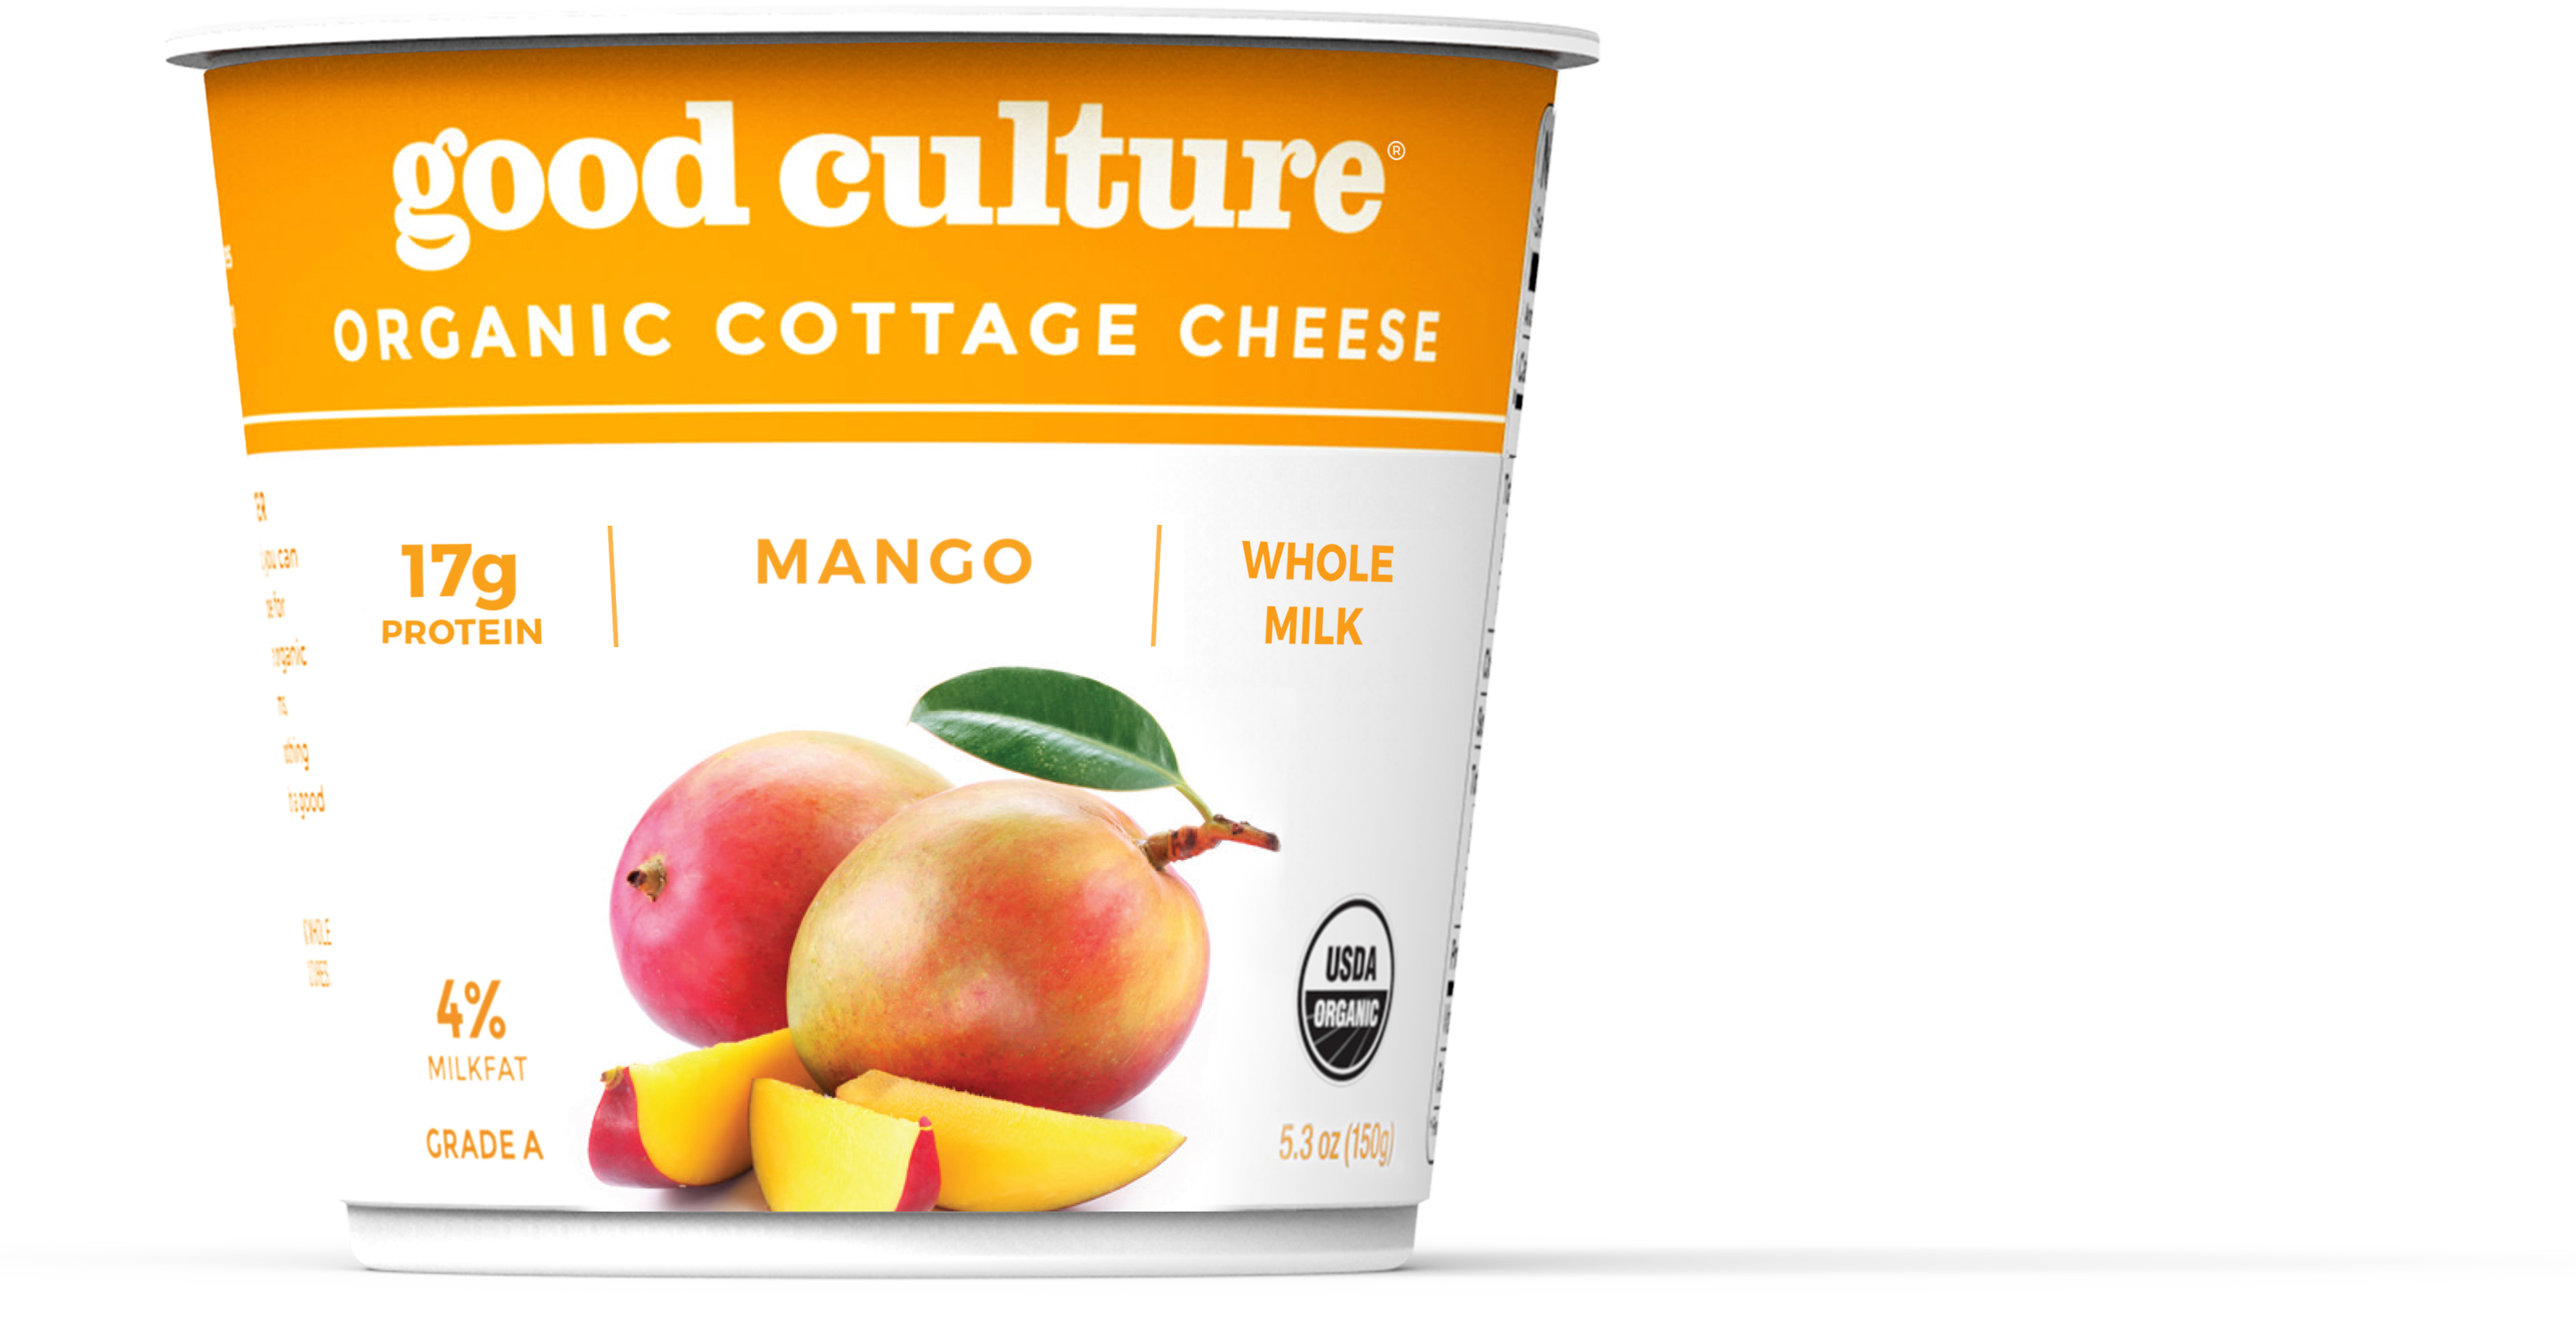 Miraculous Organic Cottage Cheese The Natural Products Brands Directory Interior Design Ideas Clesiryabchikinfo